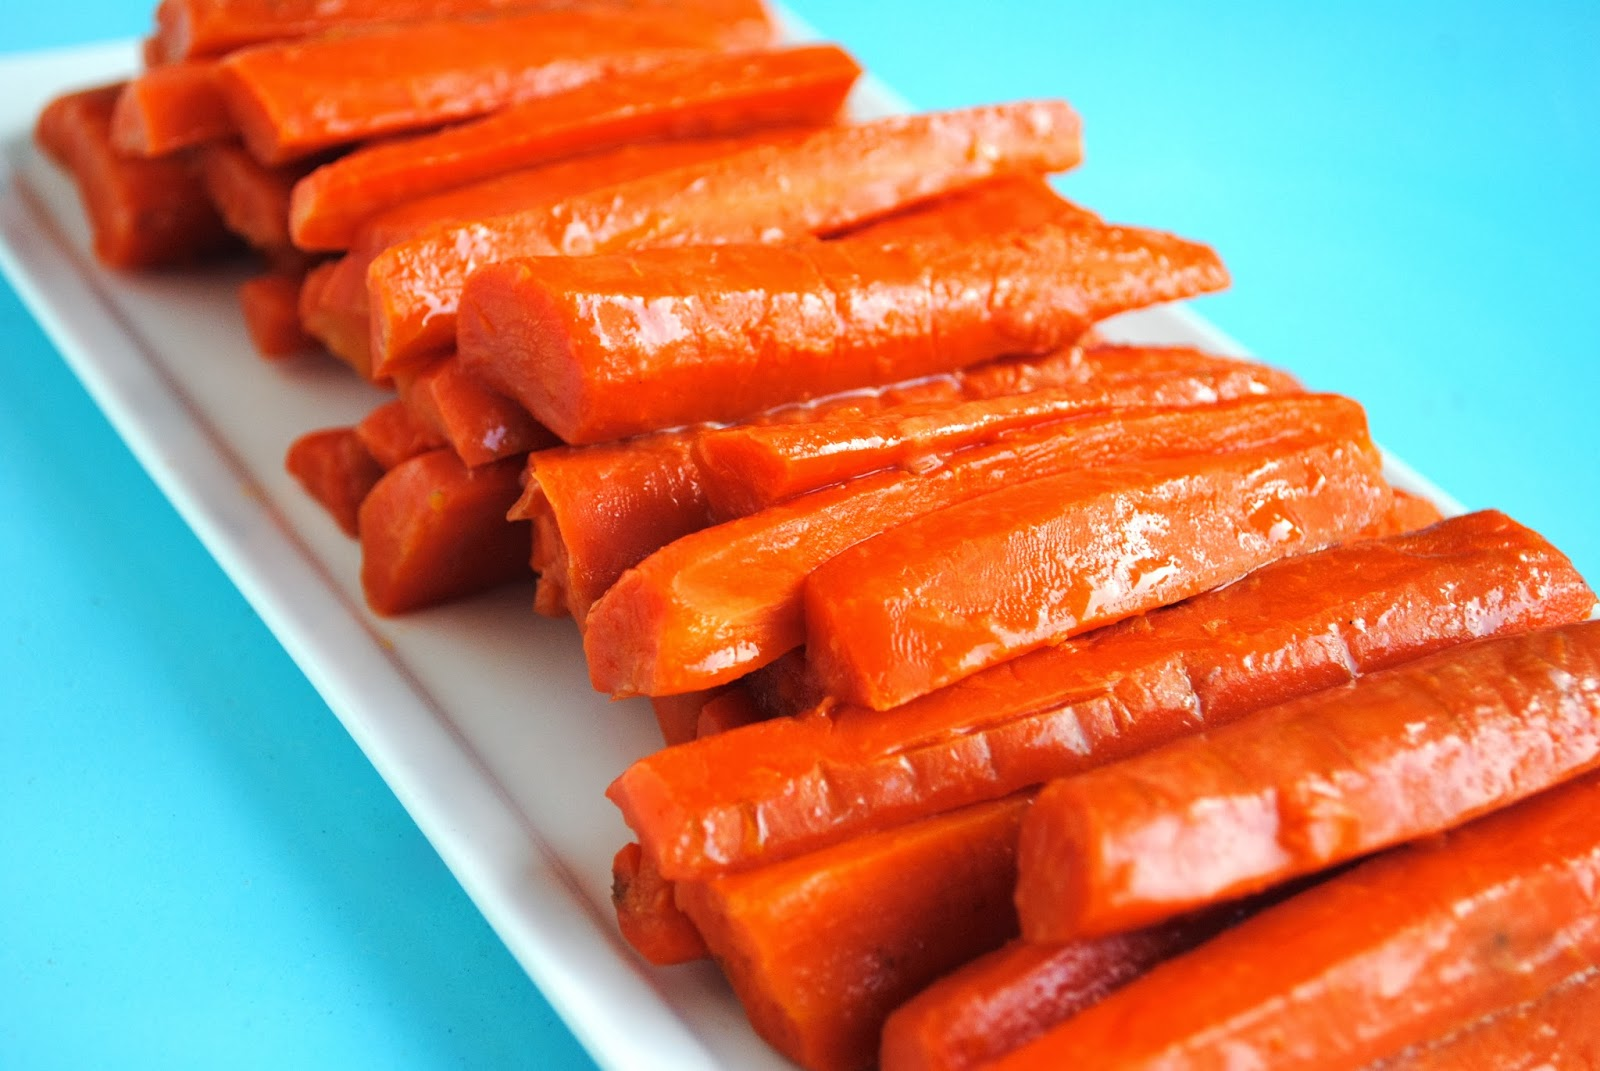 ... carrots bourbon glazed carrots roast carrots parsnips candied carrot